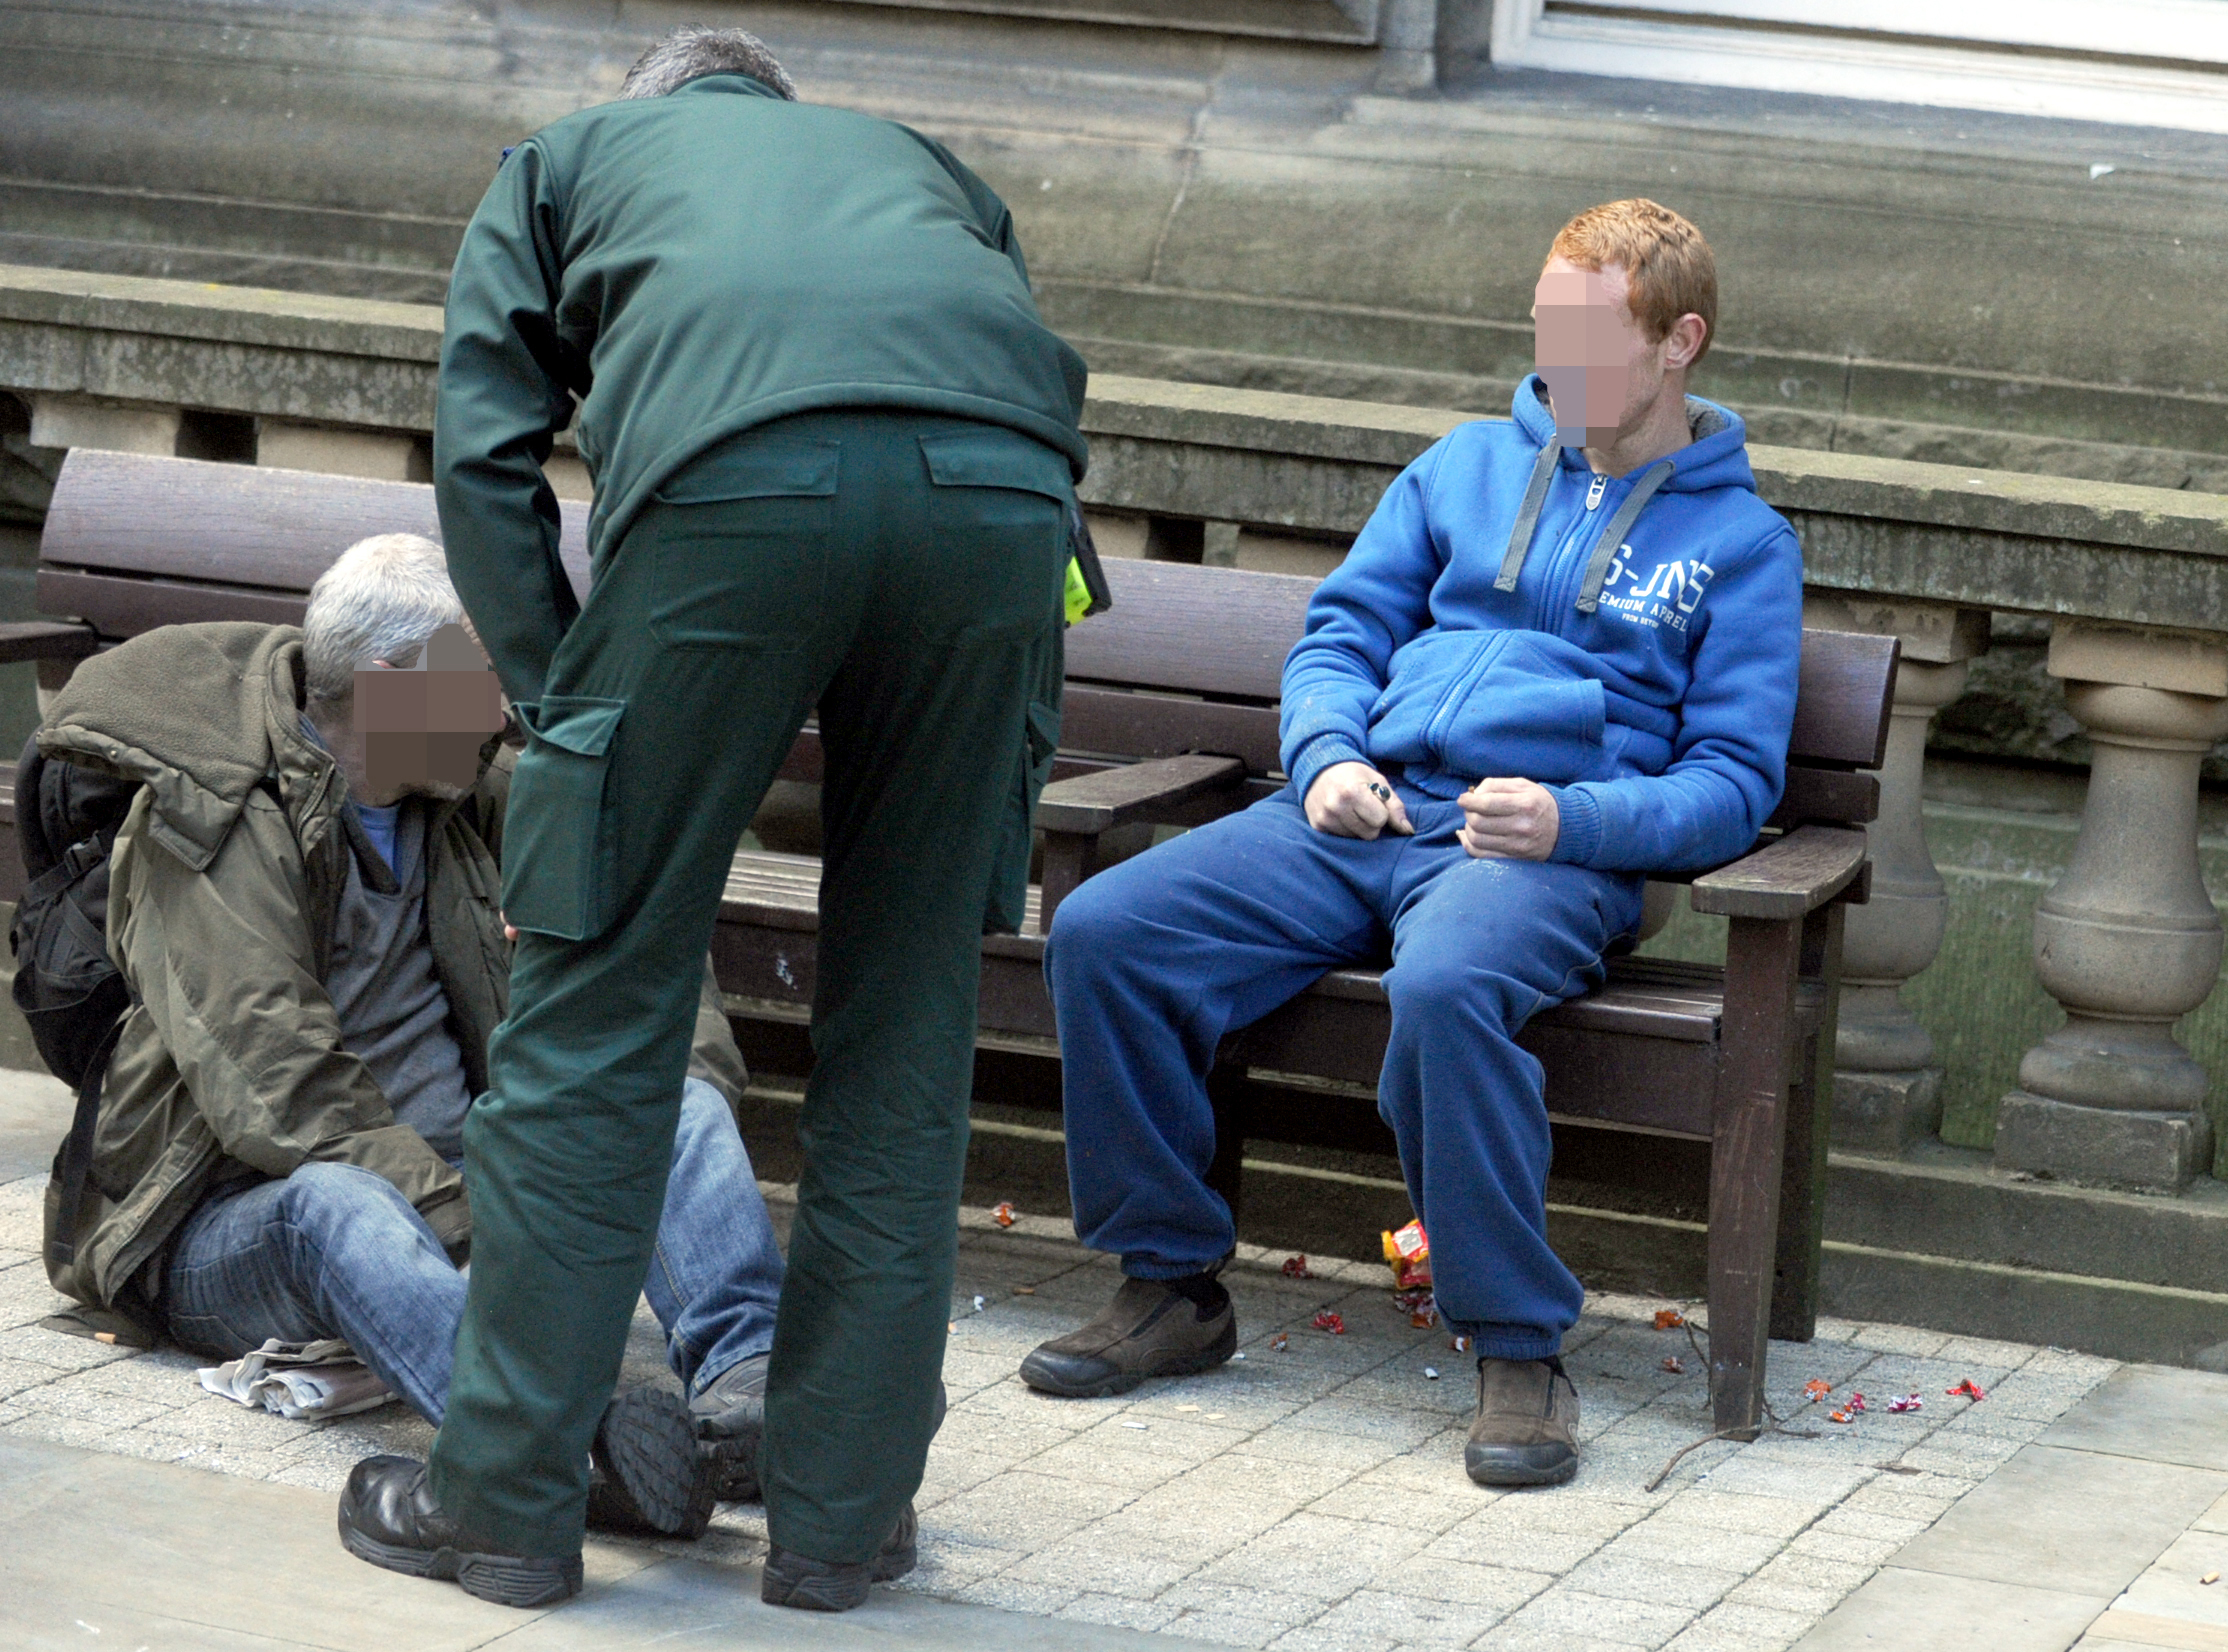 SUBSTANCE ABUSE: A Spice user collapsed outside Bolton Town Hall earlier this year